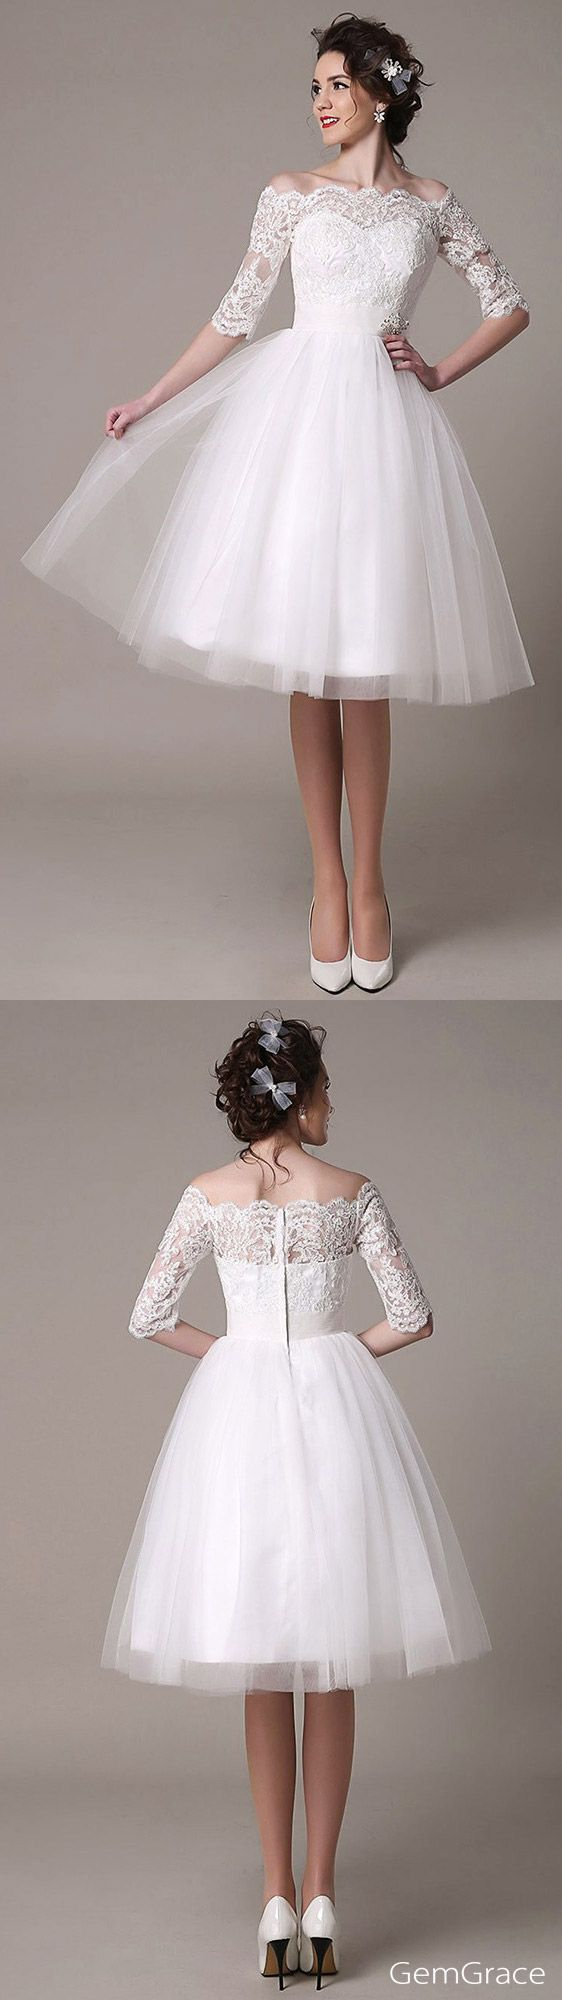 elegant sheath high neck knee length lace wedding dress with lace sleeve